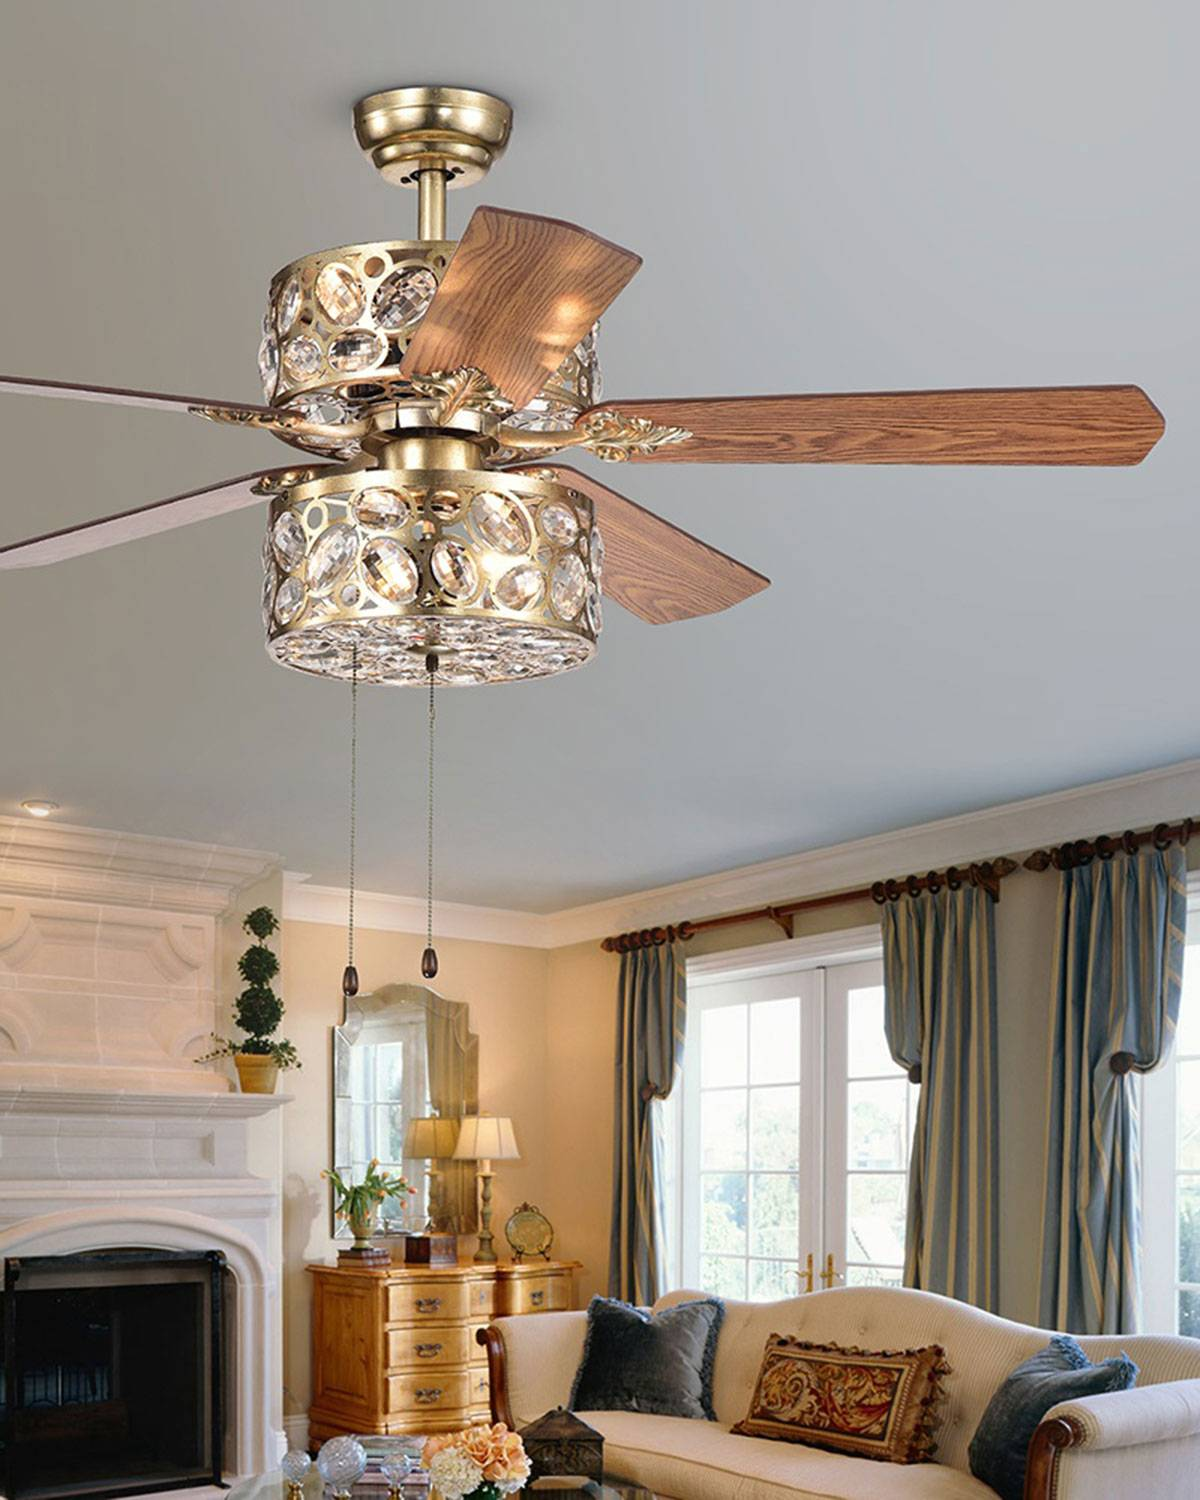 Home Accessories Thisvro Chandelier Ceiling Fan